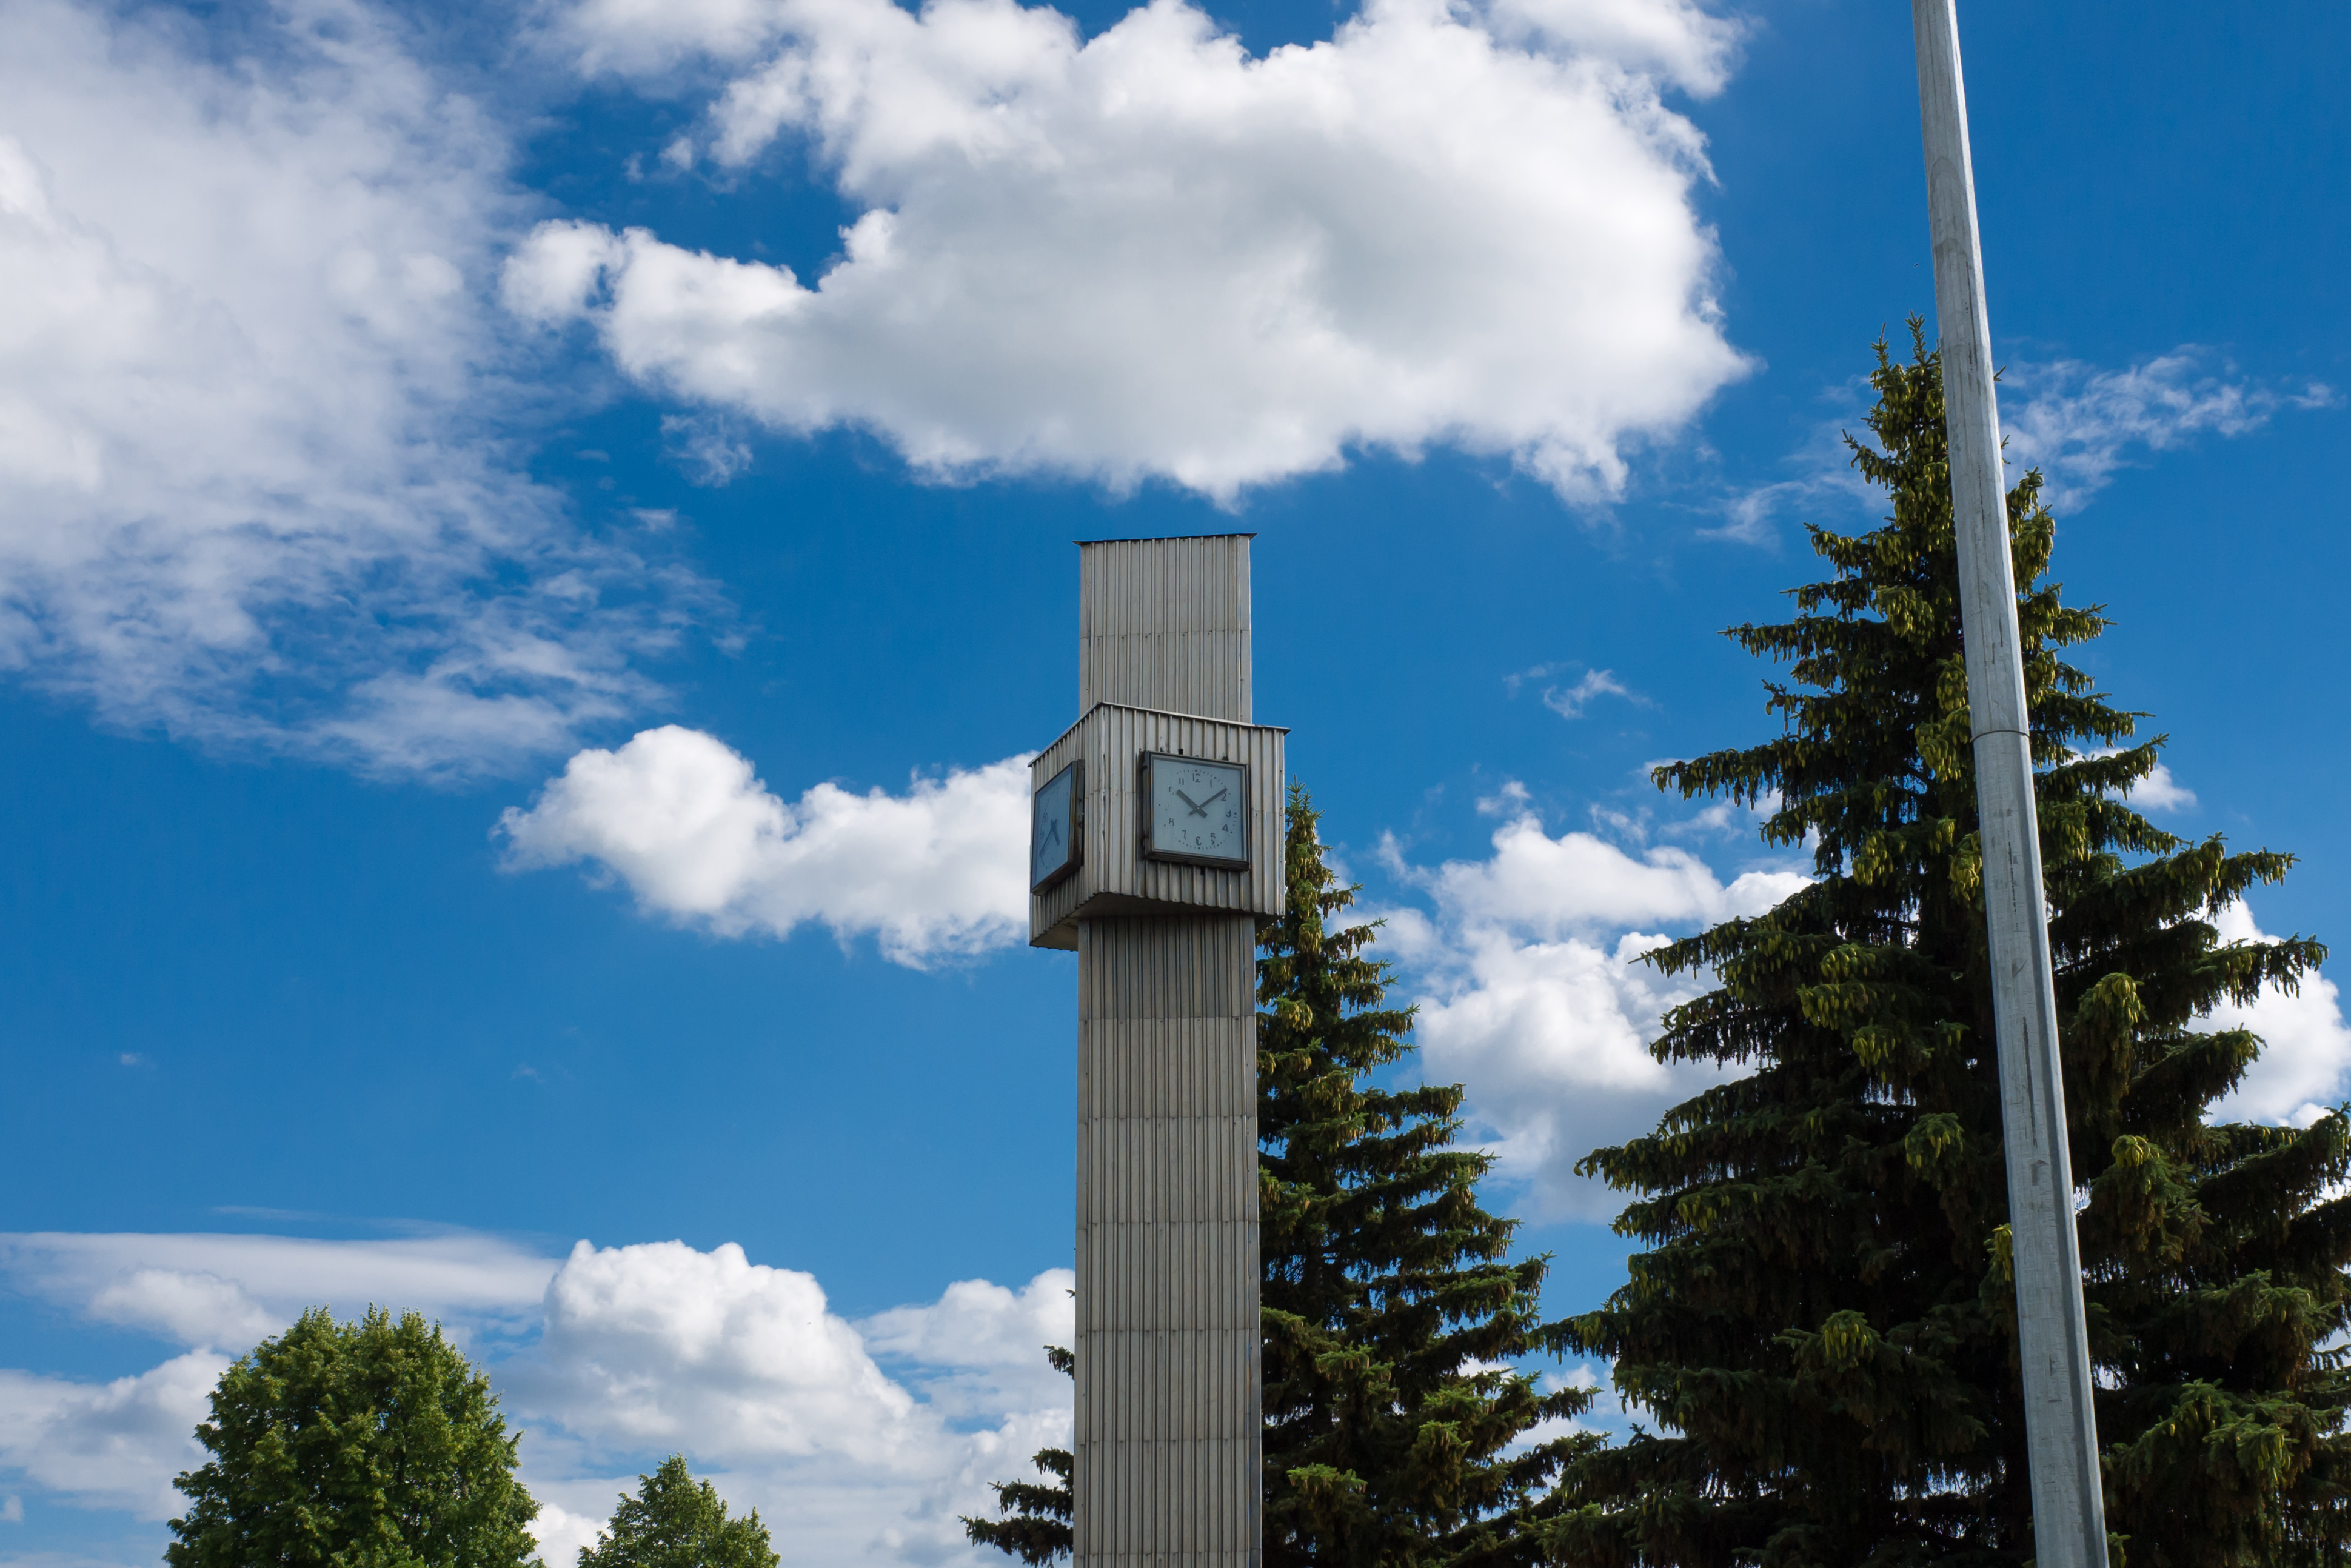 The tower with the clock on the forecourt of the airport and Tambov Donskoye